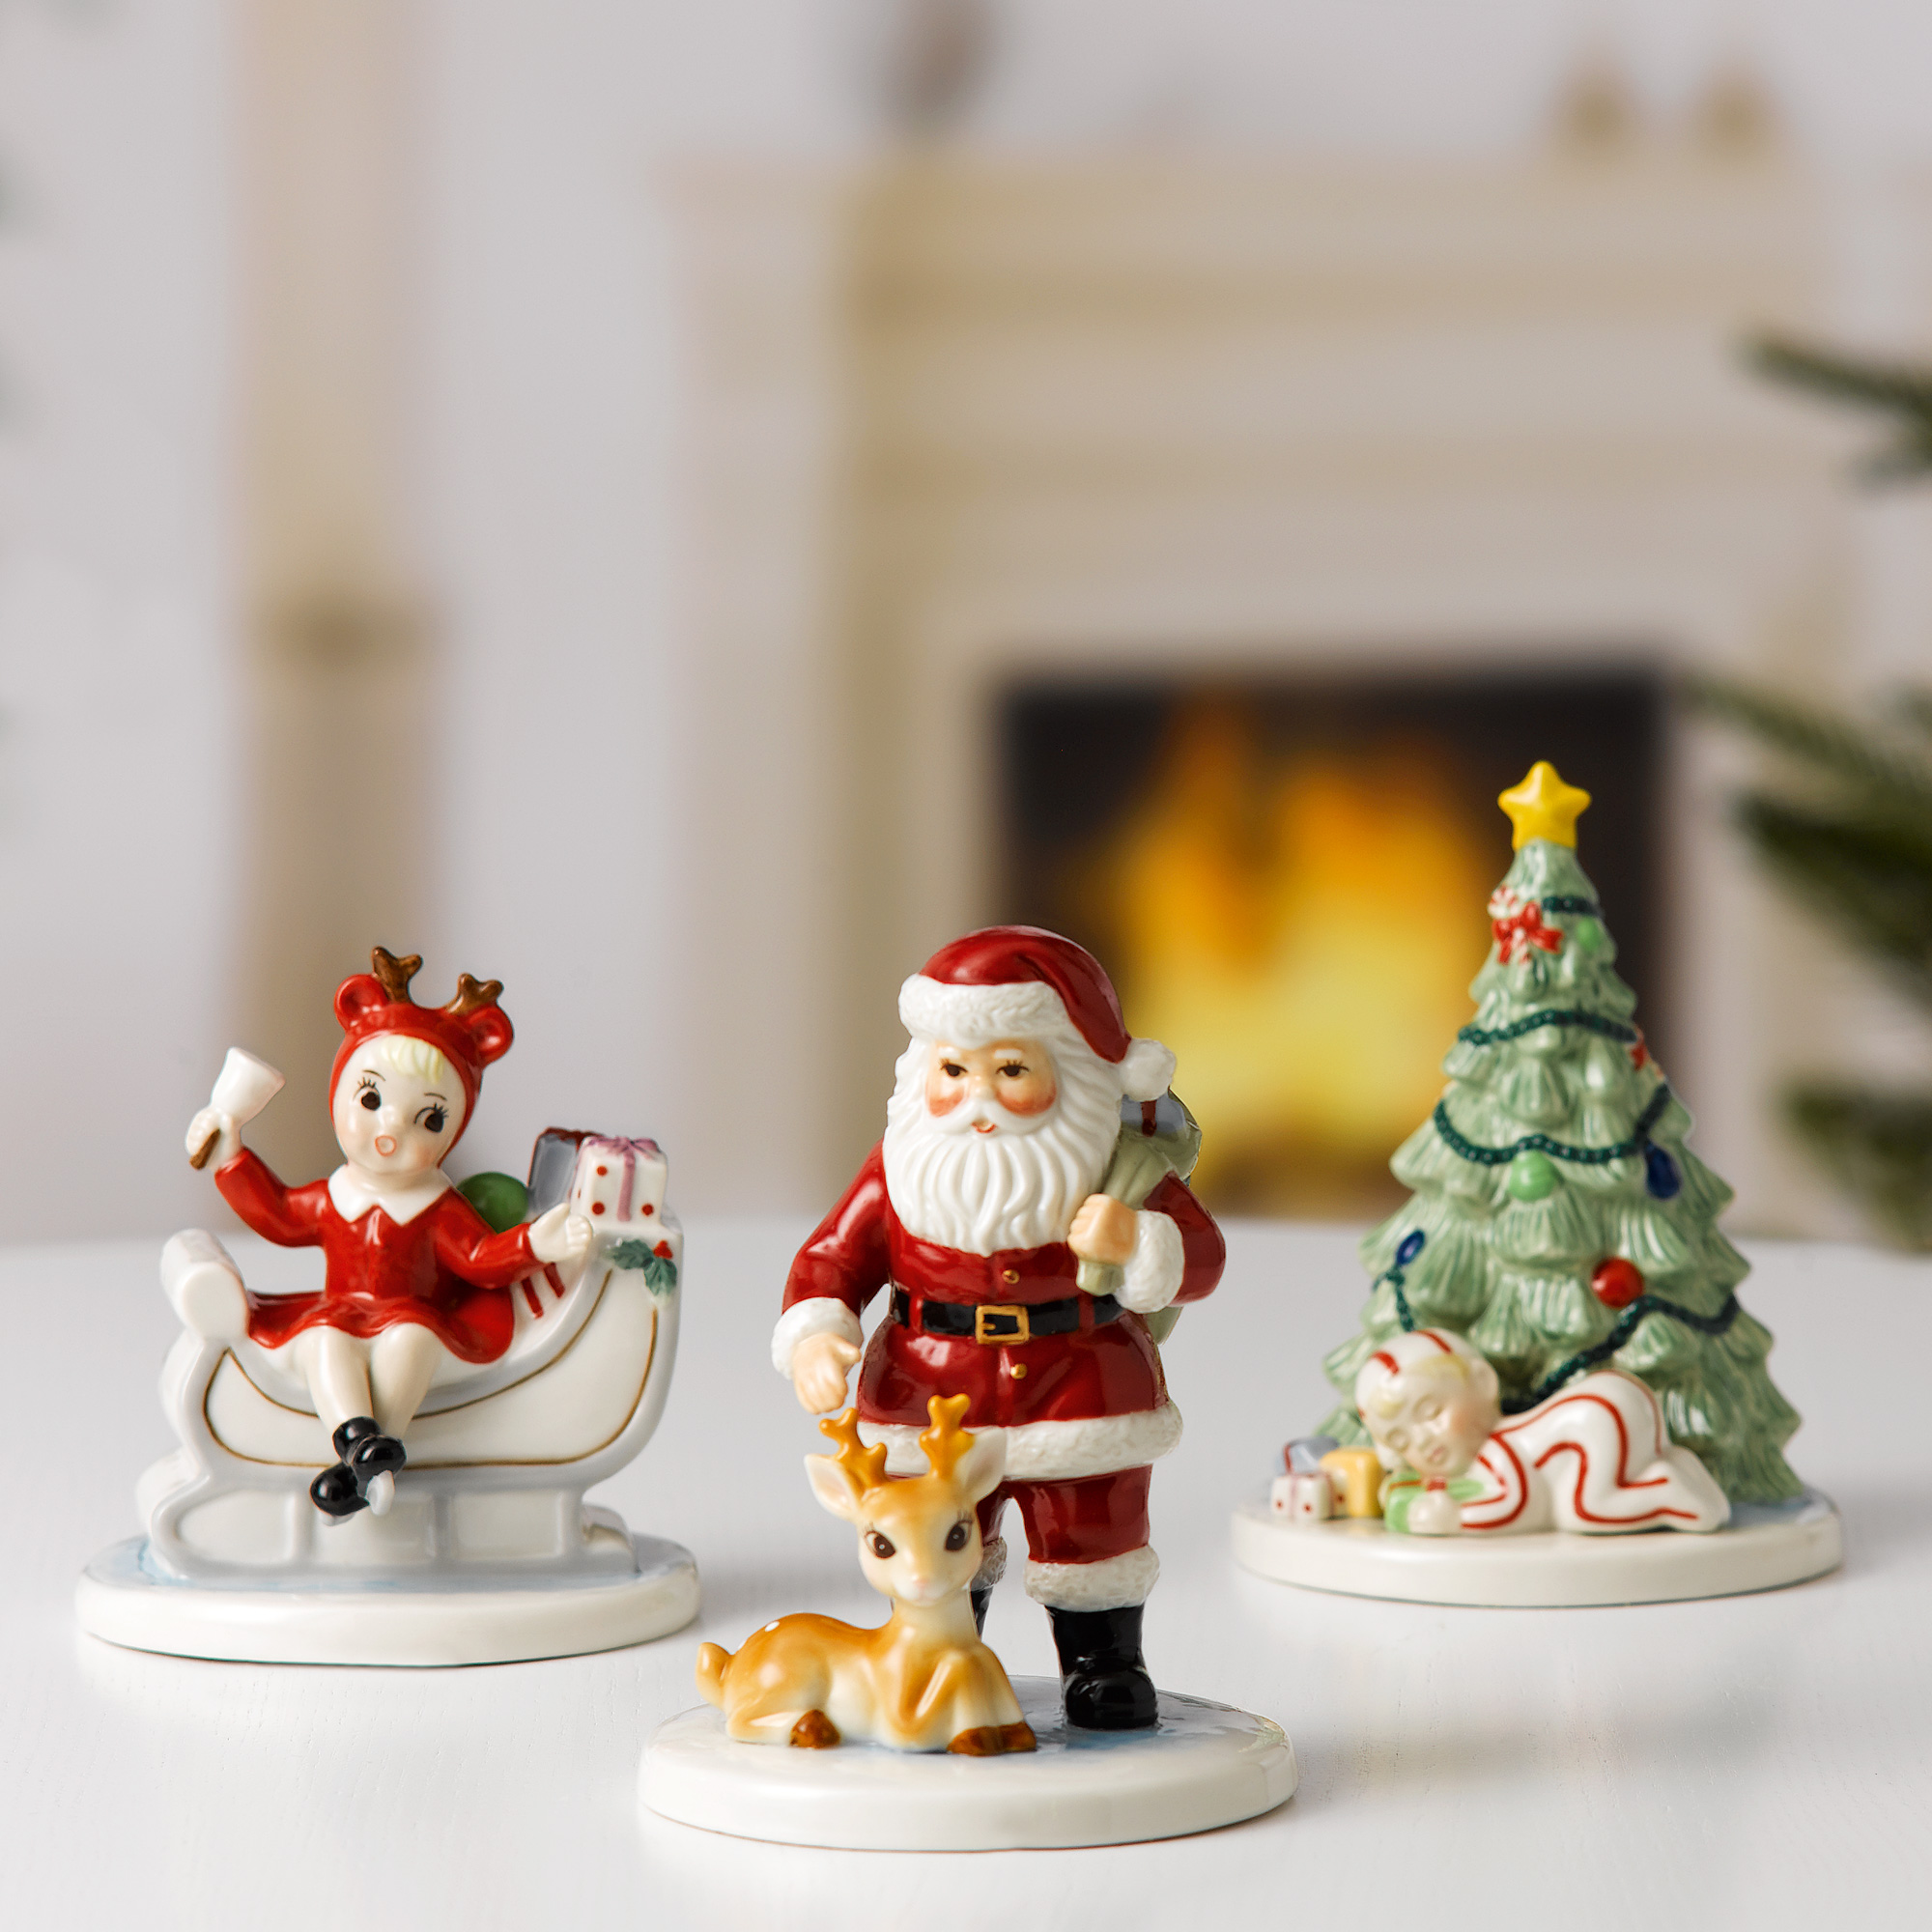 Sleigh Full of Gifts NF006 – Royal Doulton Figurine | Seaway China ...